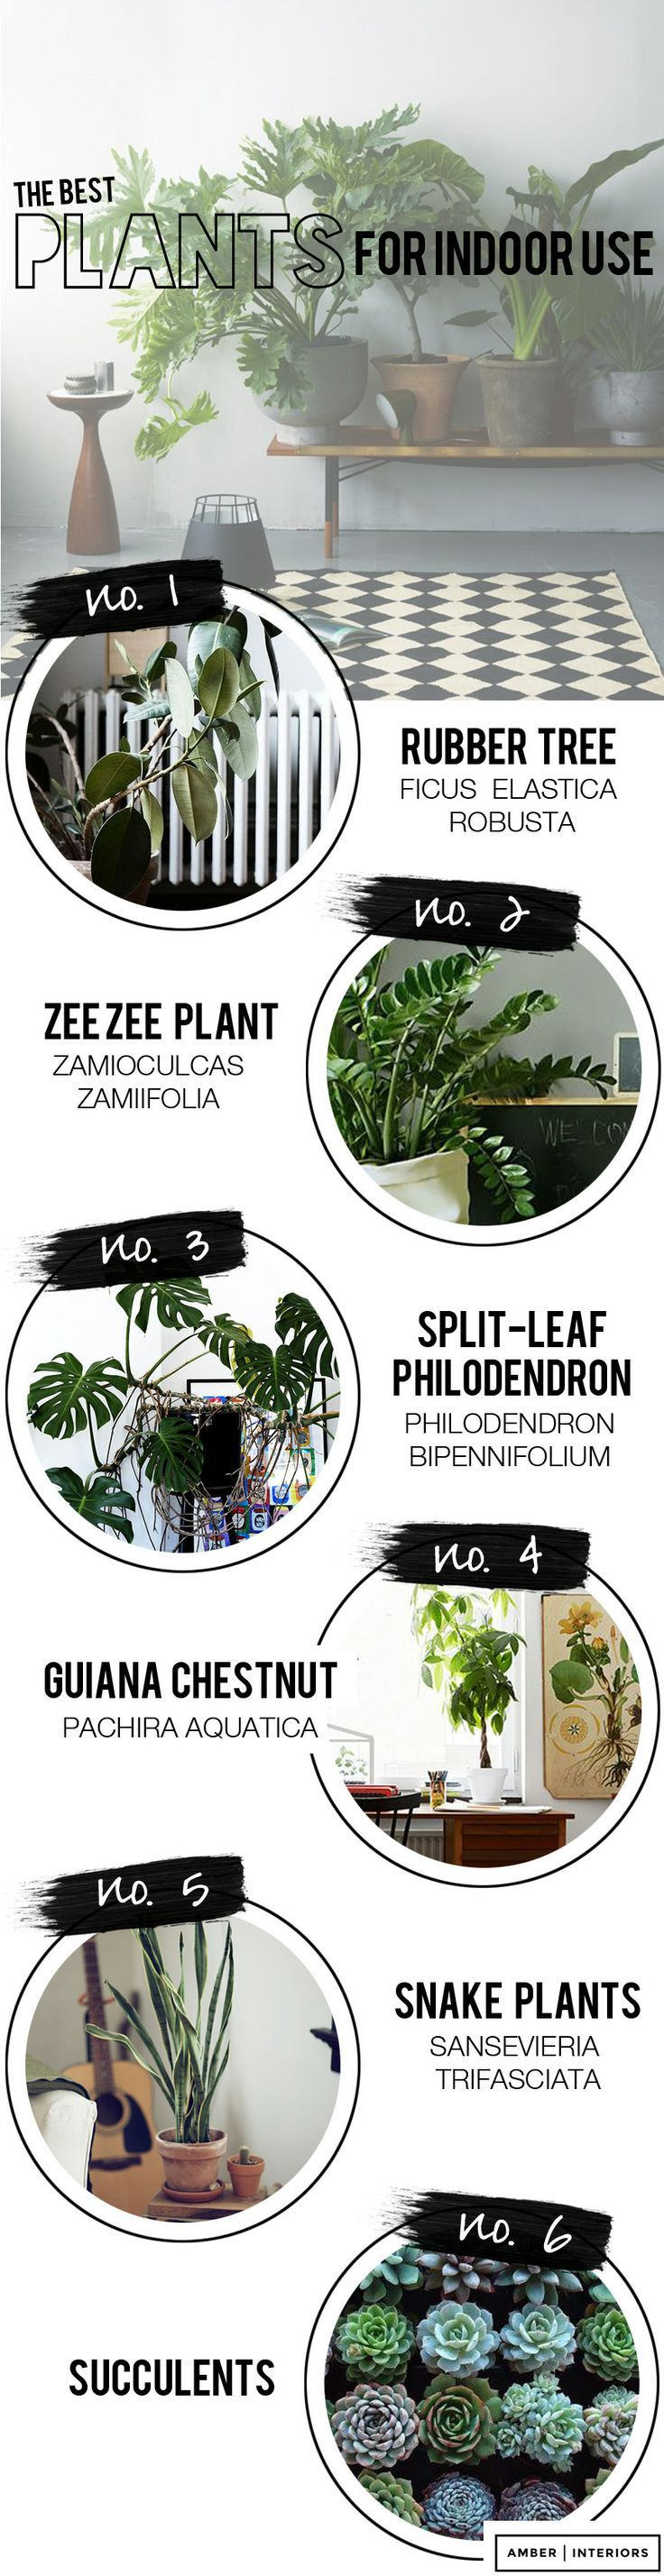 6 best indoor house plants Amber Interiors